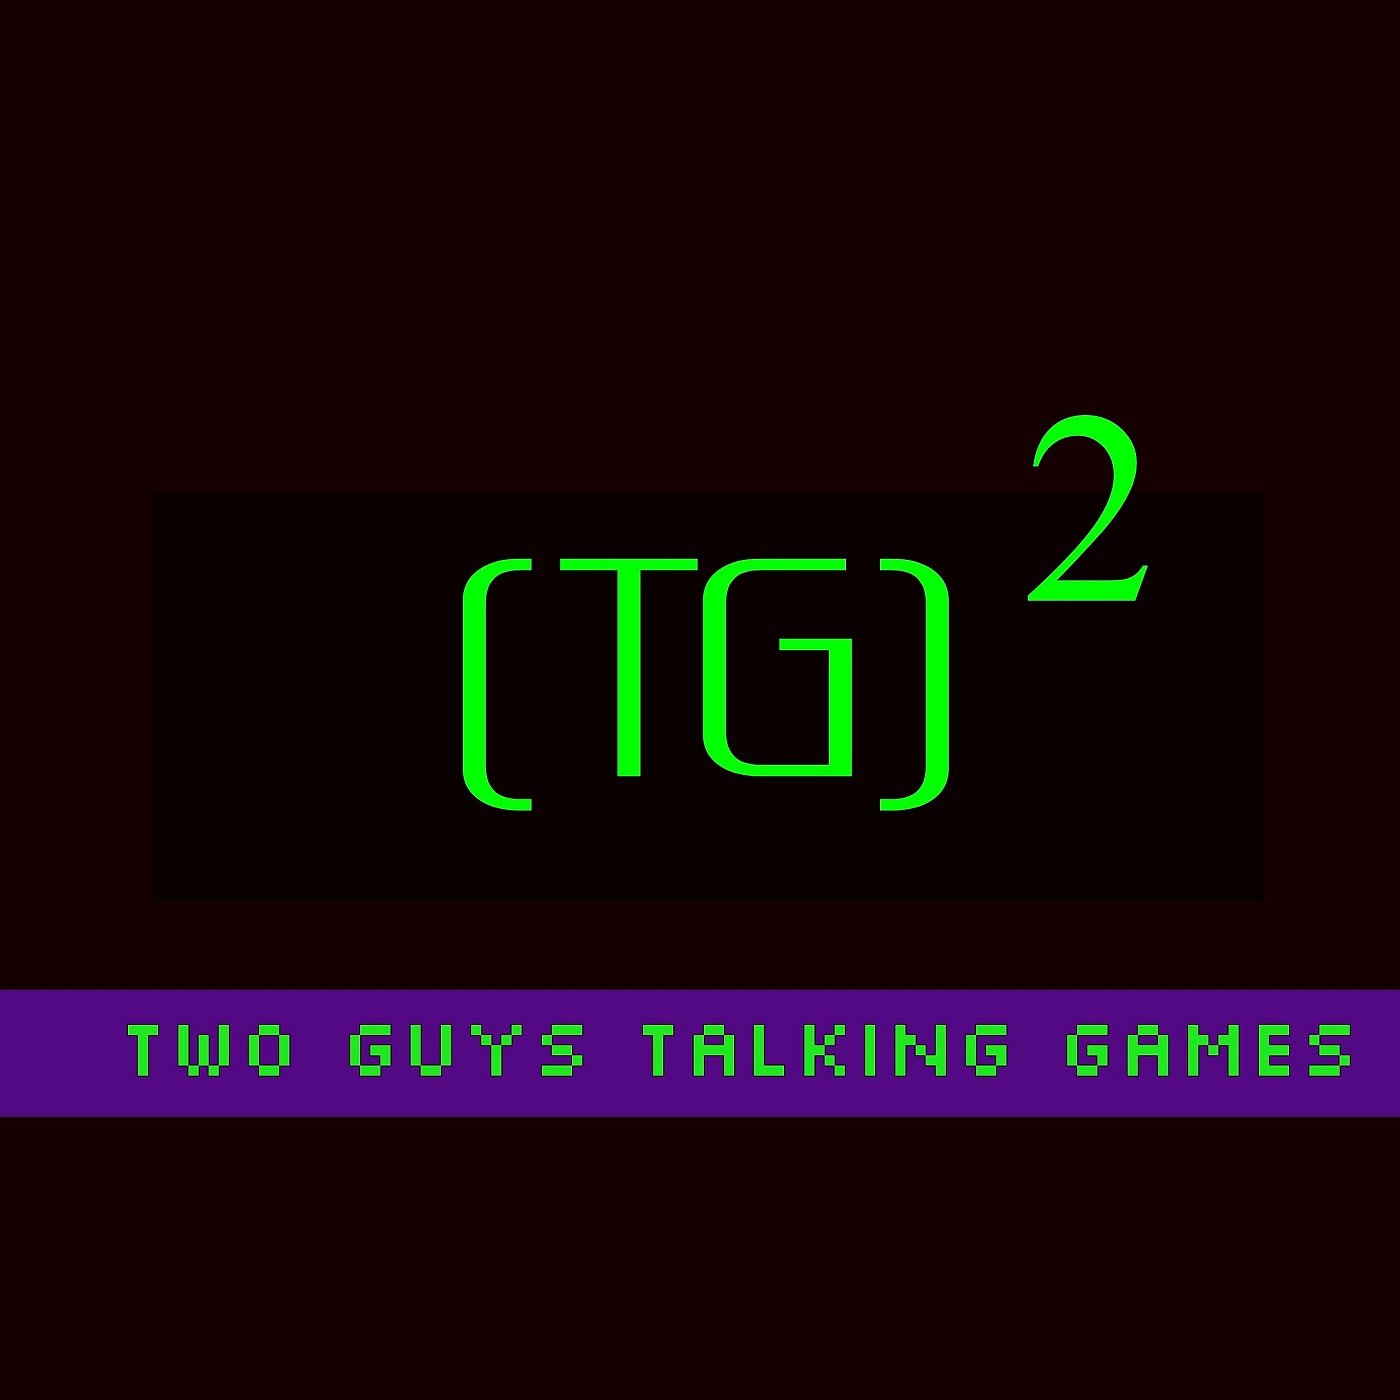 Two Guys Talking Games: Video Games Podcast